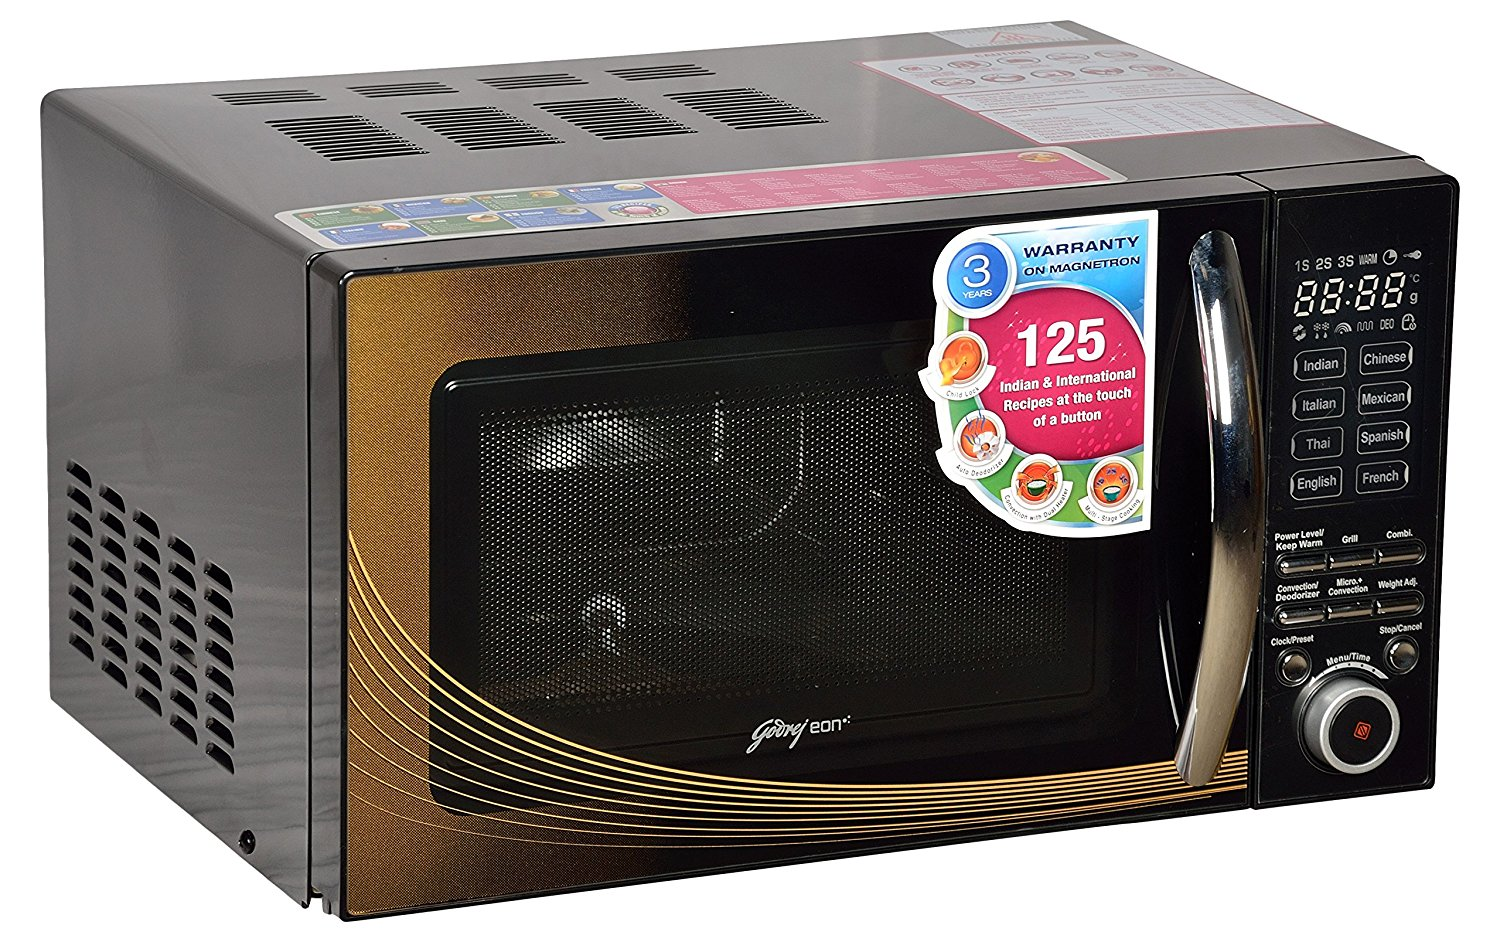 20 Liters convection microwave oven from Godrej